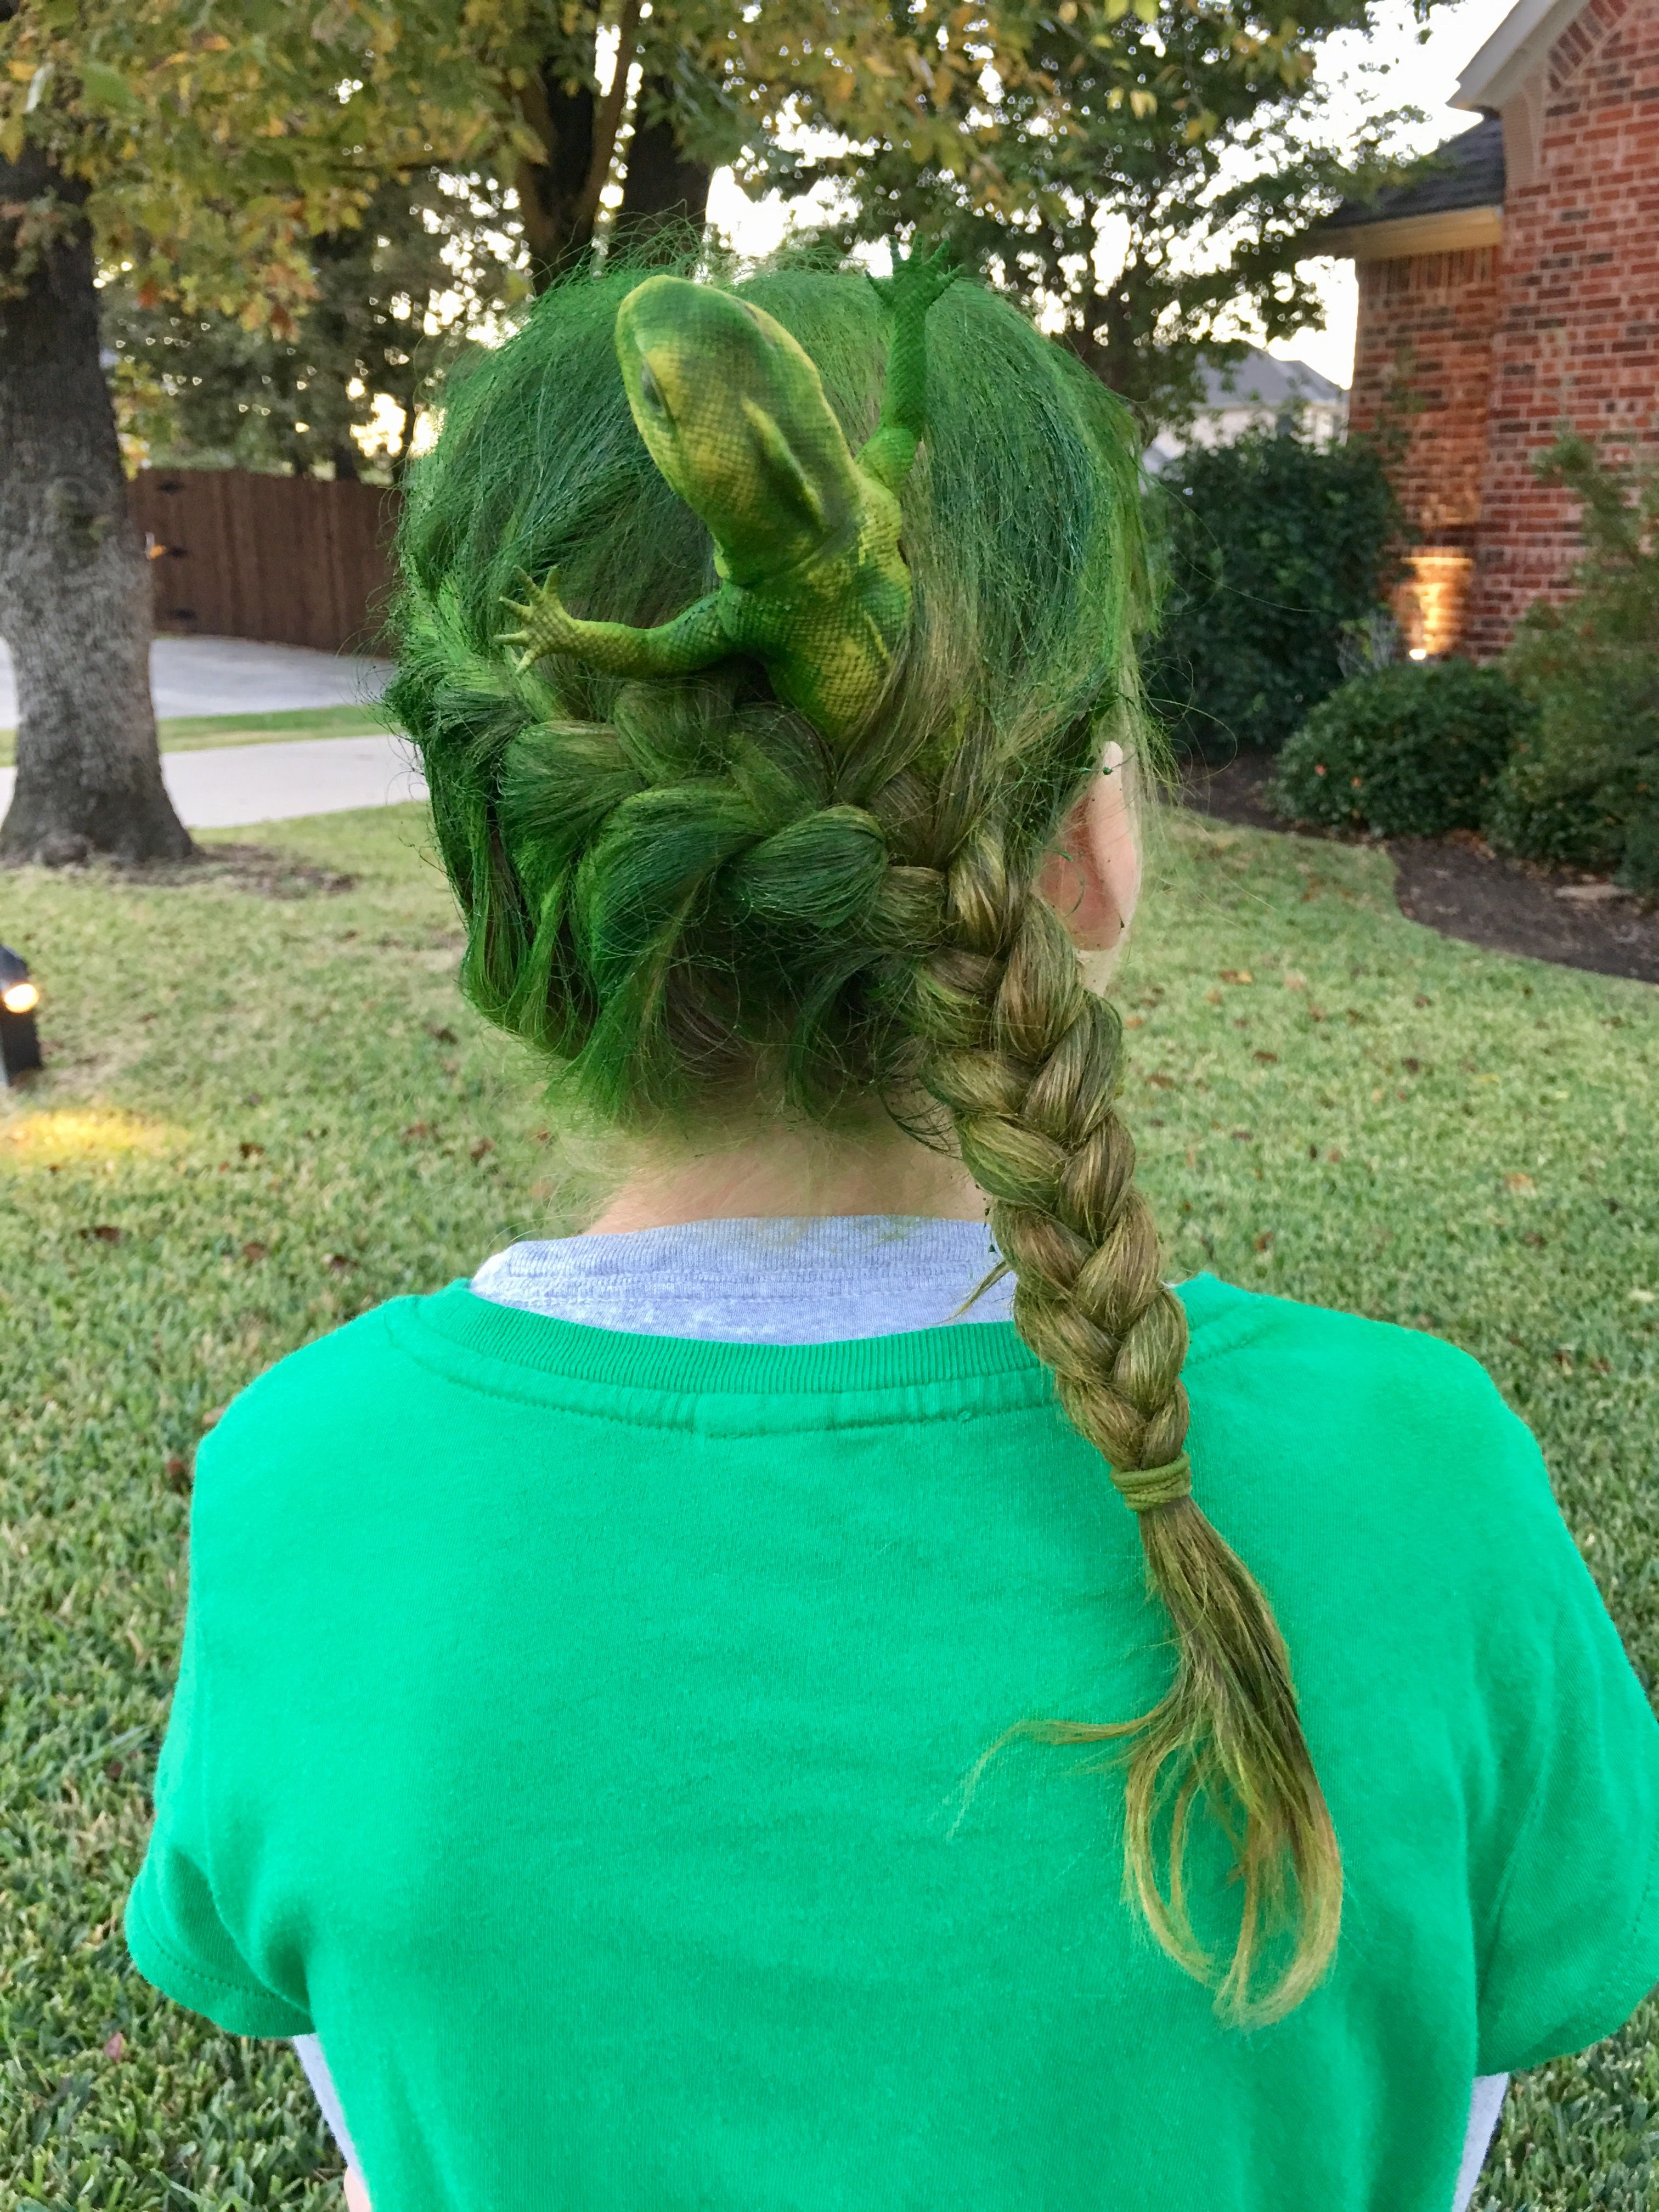 crazy hair day at school. french braid holding rubber lizard